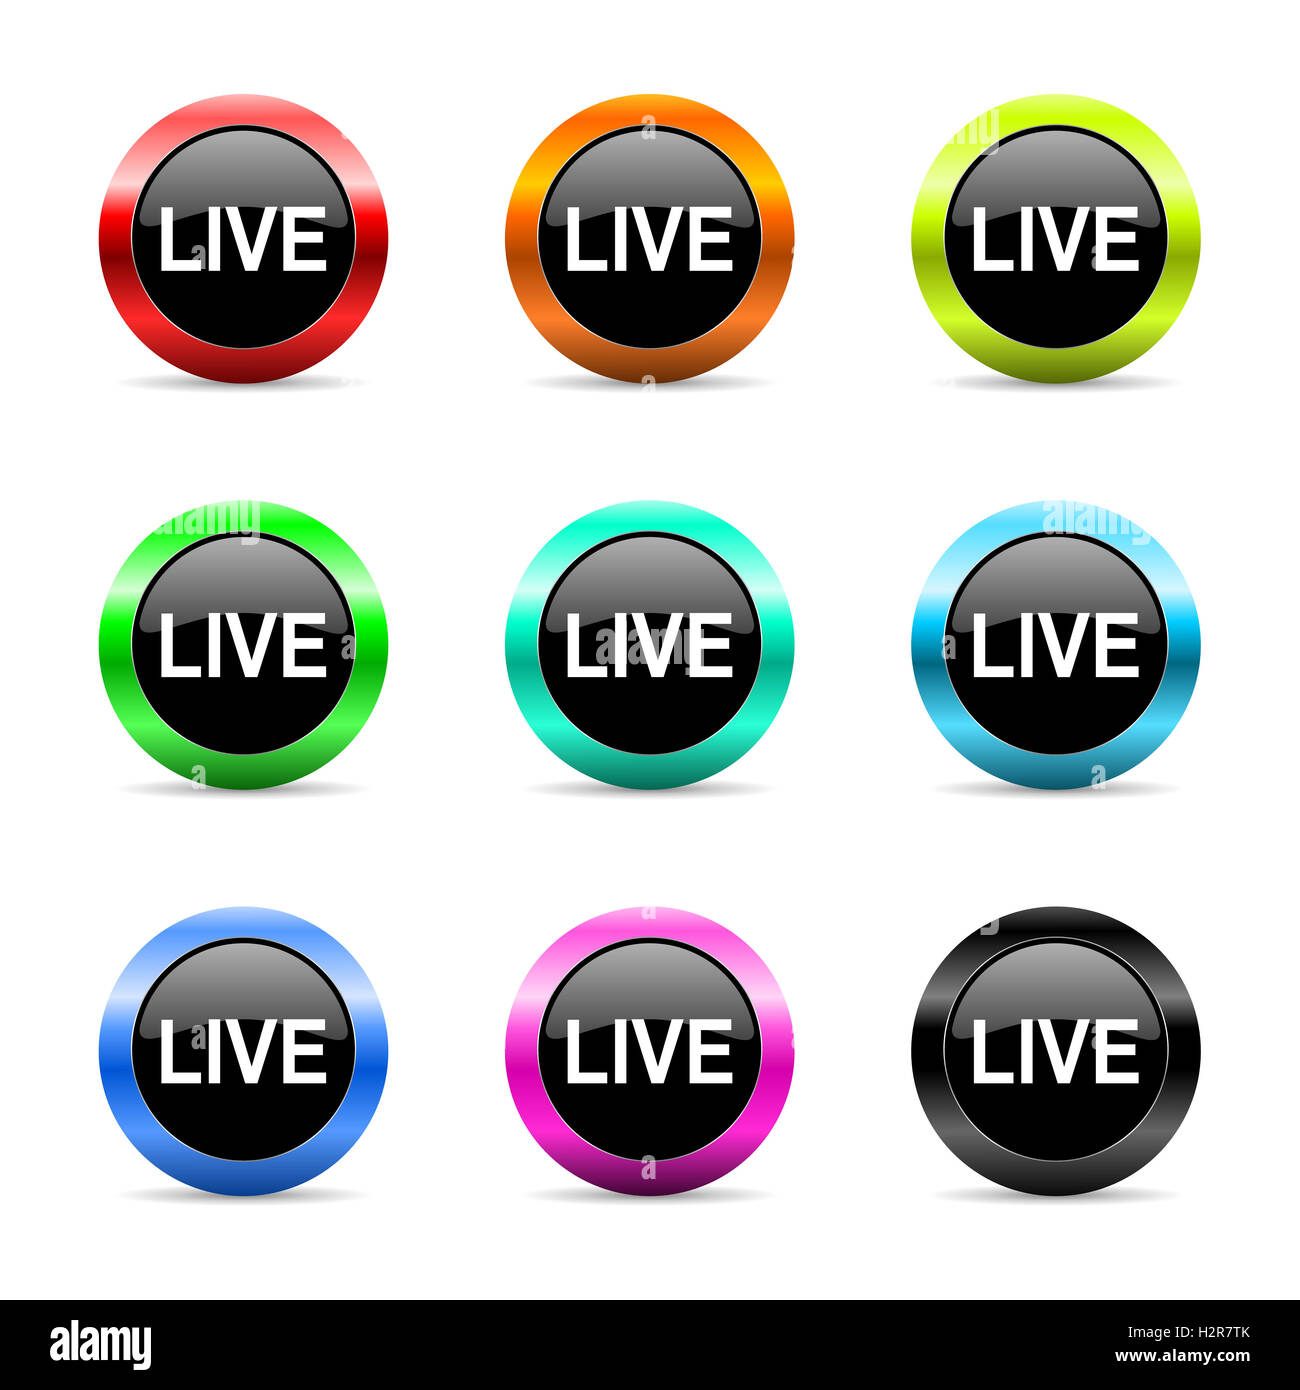 live web icons set - Stock Image